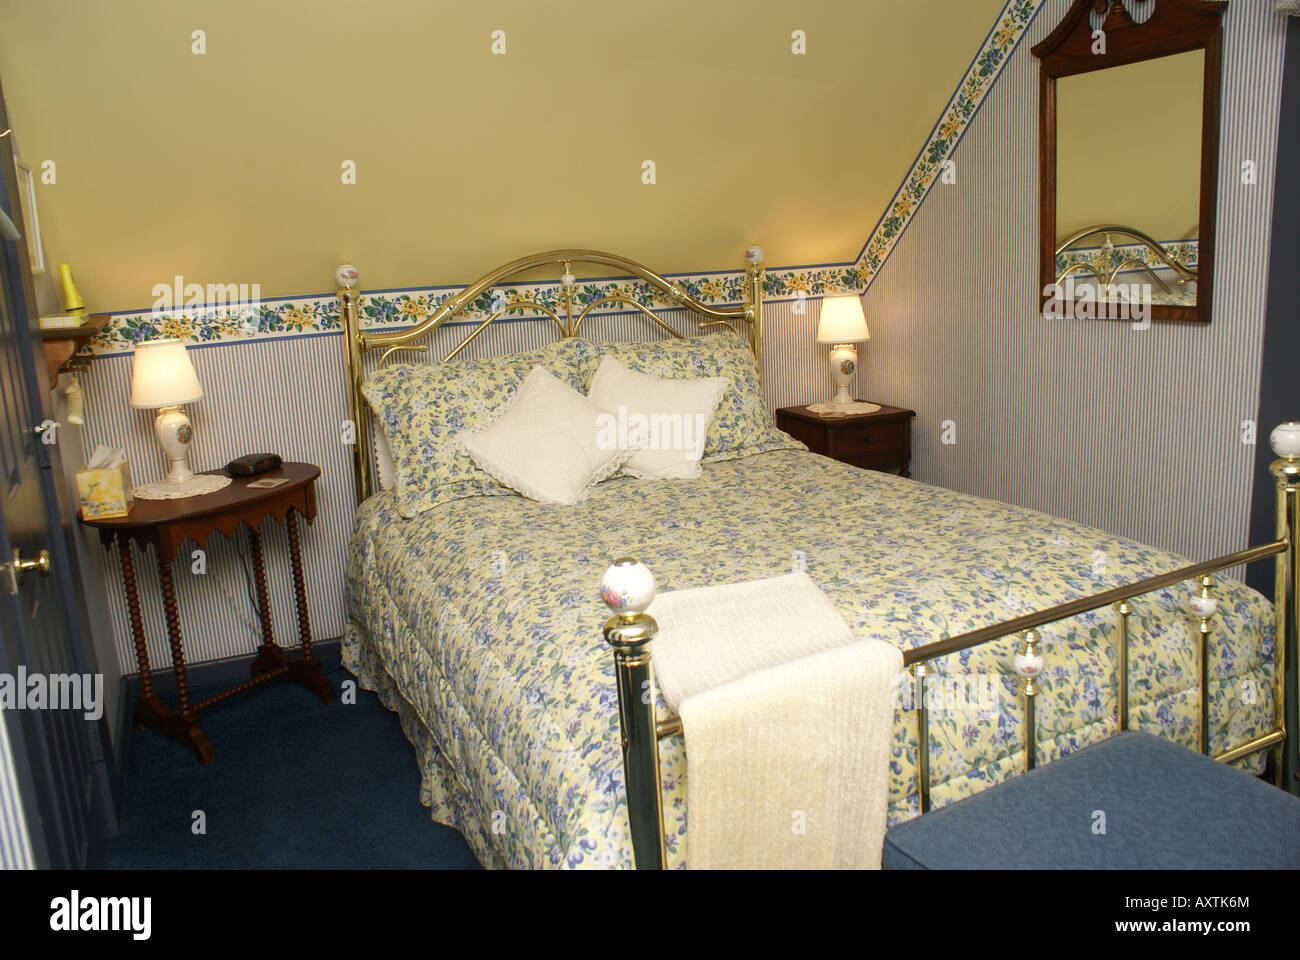 Bedroom antiques - Stock Image